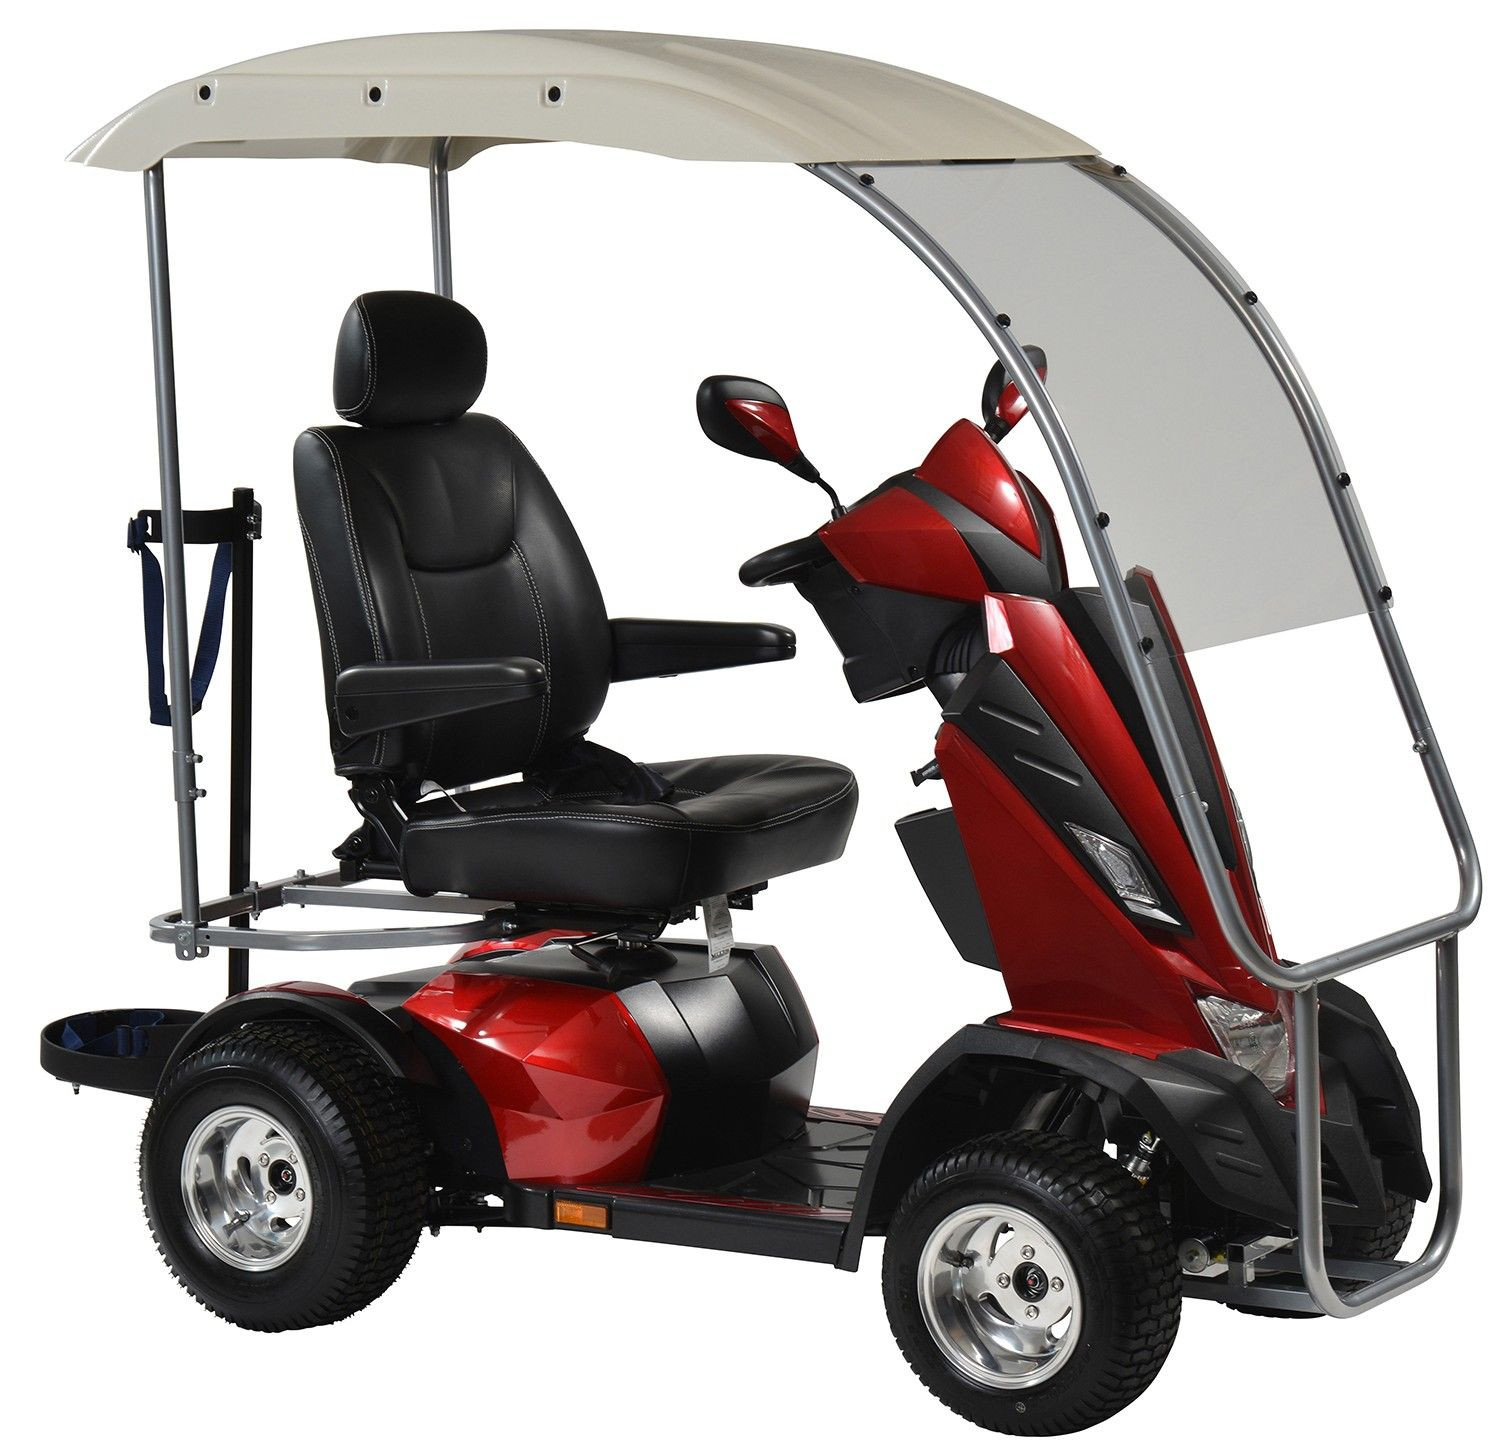 King cobra pgv executive 4 wheel scooter for sale lowest for Motorized wheelchair for sale